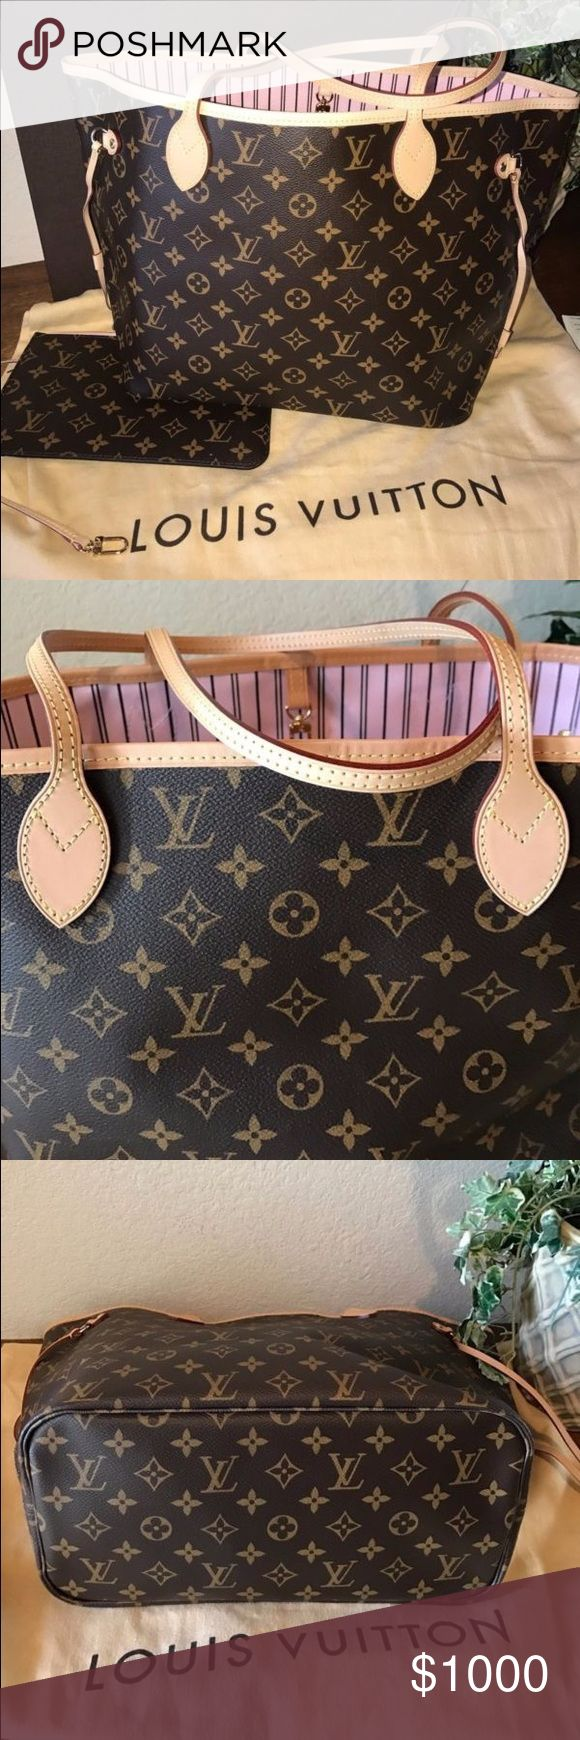 Louie Vuitton never full AUTHENTIC LOUIS VUITTON ROSE BALLERINE NEVERFULL MM BRAND NEW Louis Vuitton Bags Totes